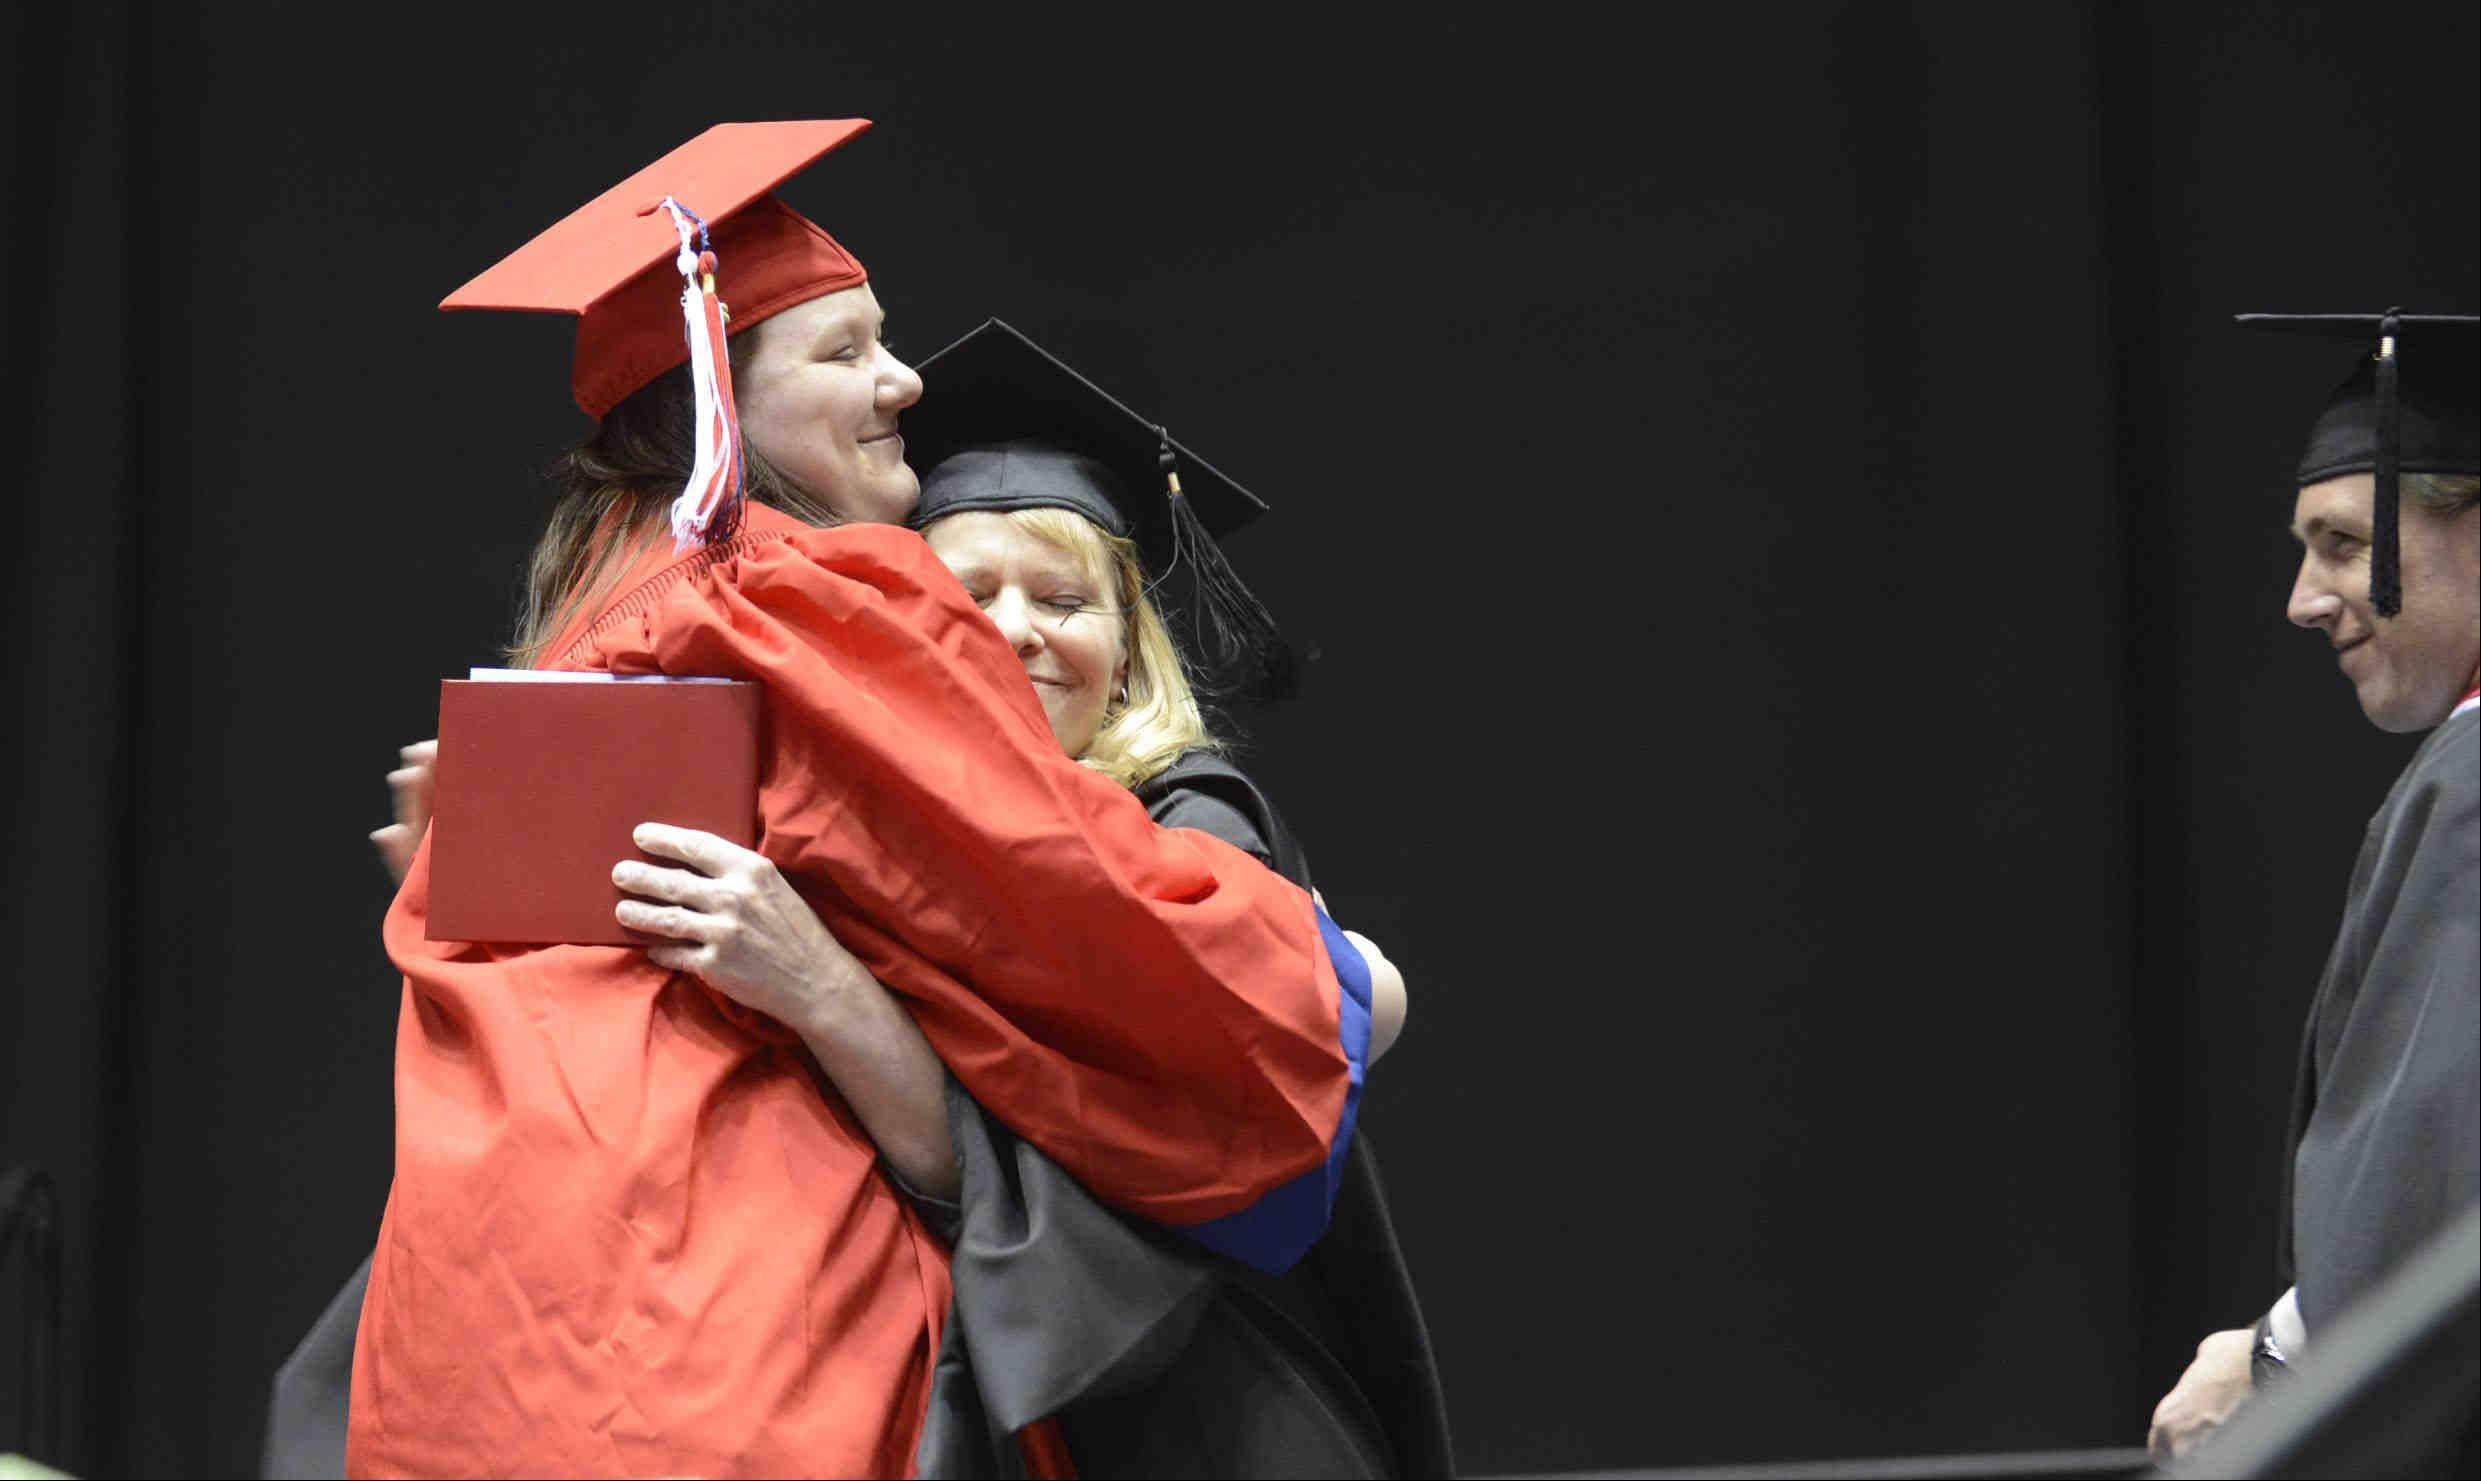 Graduate Sheah Lin Thompson hugs her mother, District 129 Board of Education member Mrs. Amie Thompson, who presented her diploma onstage Sunday during the West Aurora High School Class of 2013 commencement at Northern Illinois University in Dekalb.